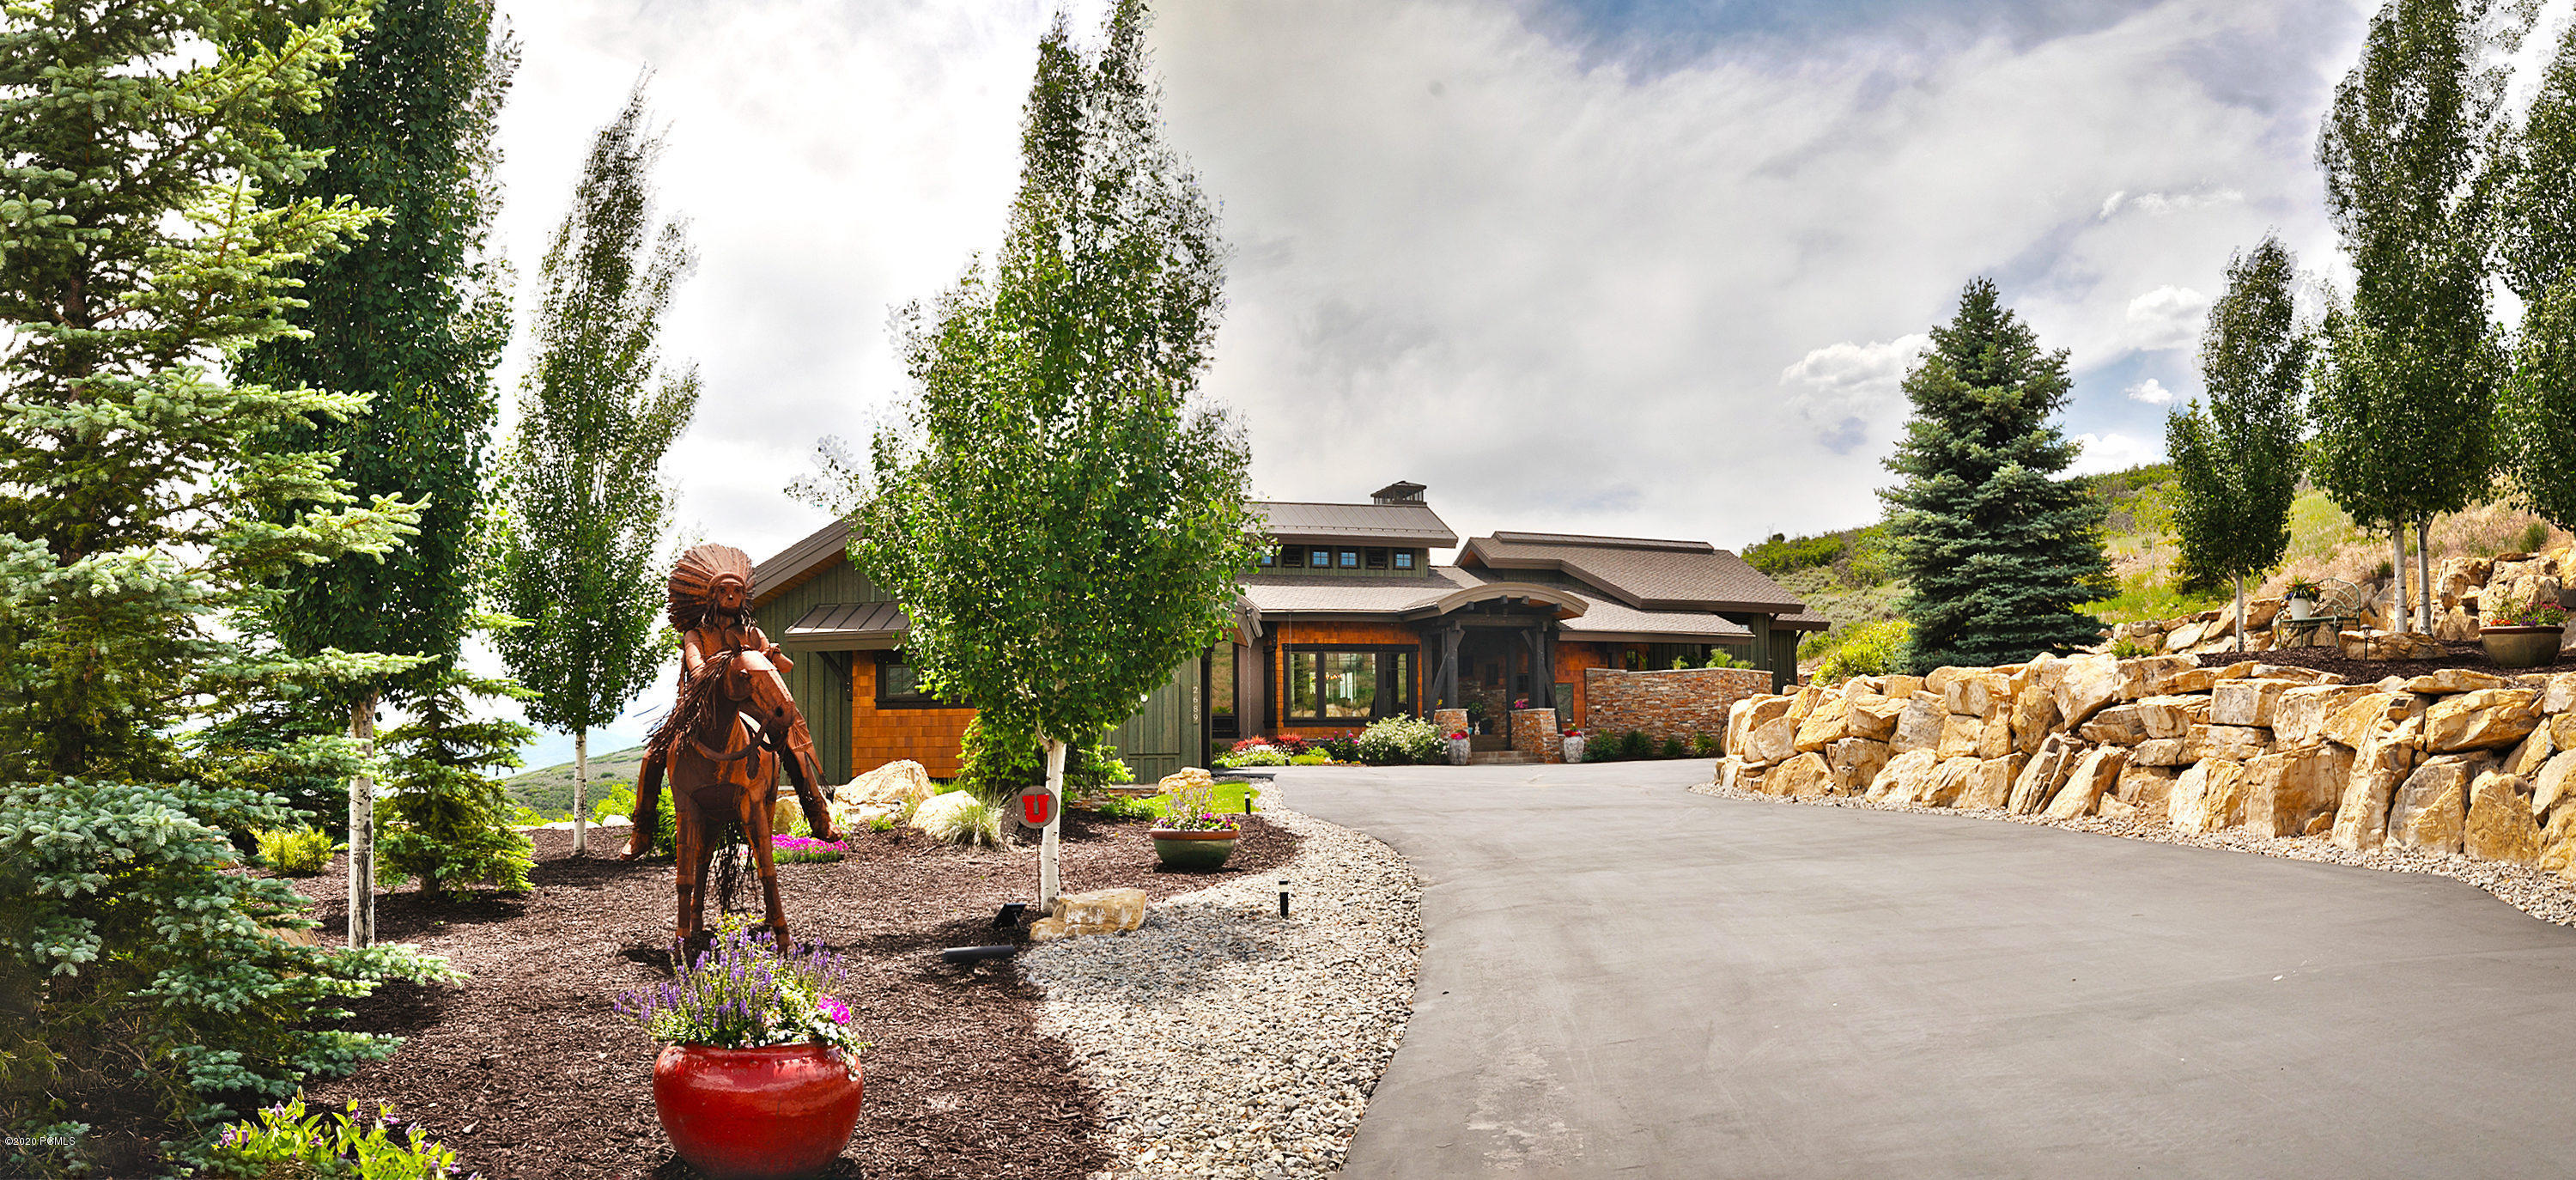 2689 River Meadows Drive, Midway, Utah 84049, 4 Bedrooms Bedrooms, ,5 BathroomsBathrooms,Single Family,For Sale,River Meadows,20190109112430415765000000